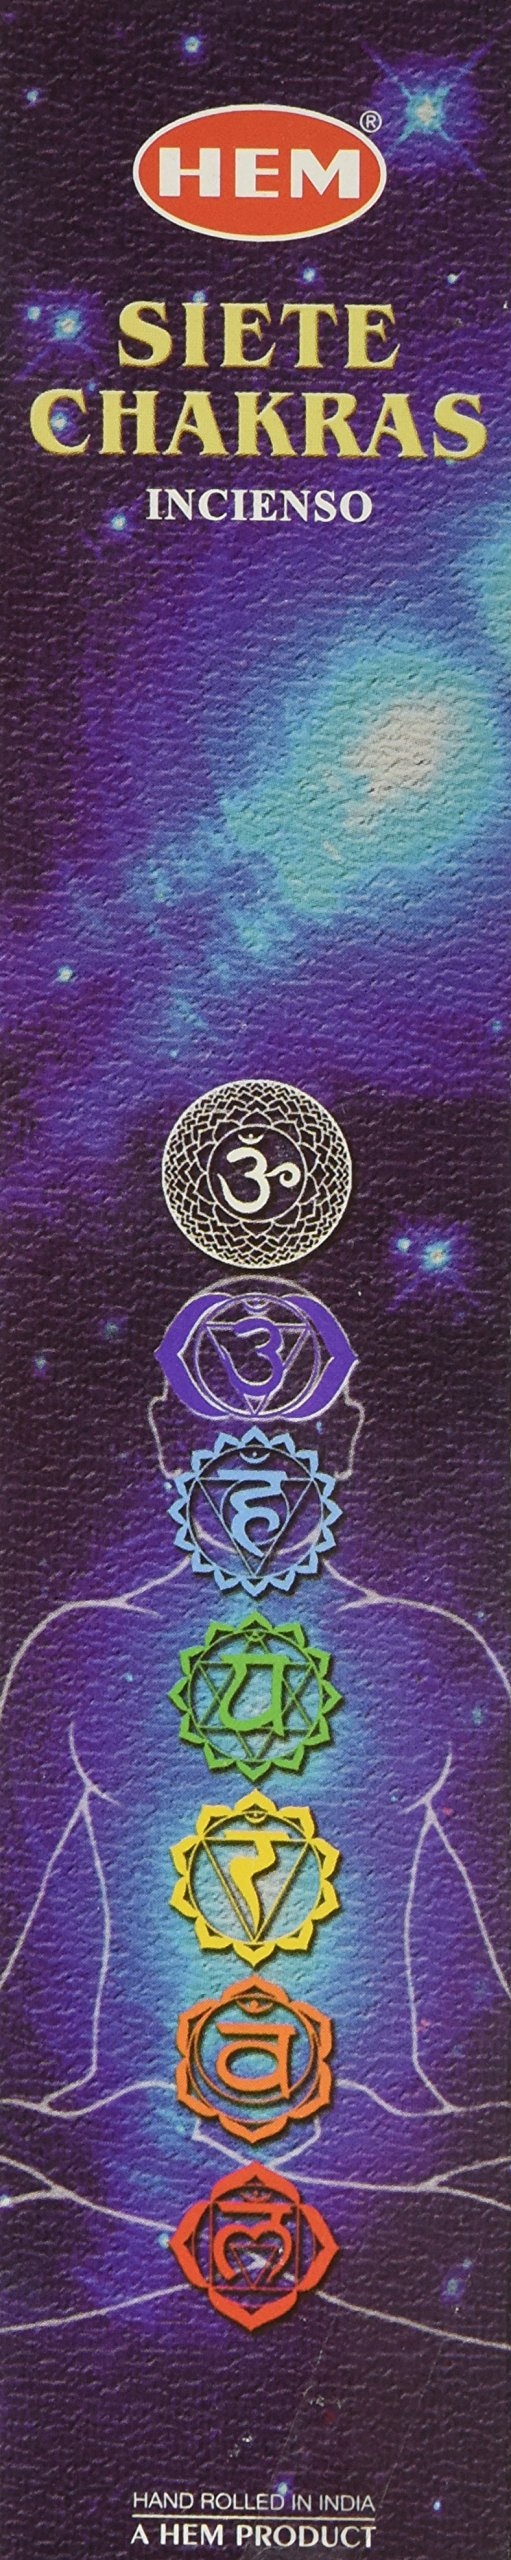 Seven Chakras - 35 Gram Box, 7 Difference Incense - From HEM